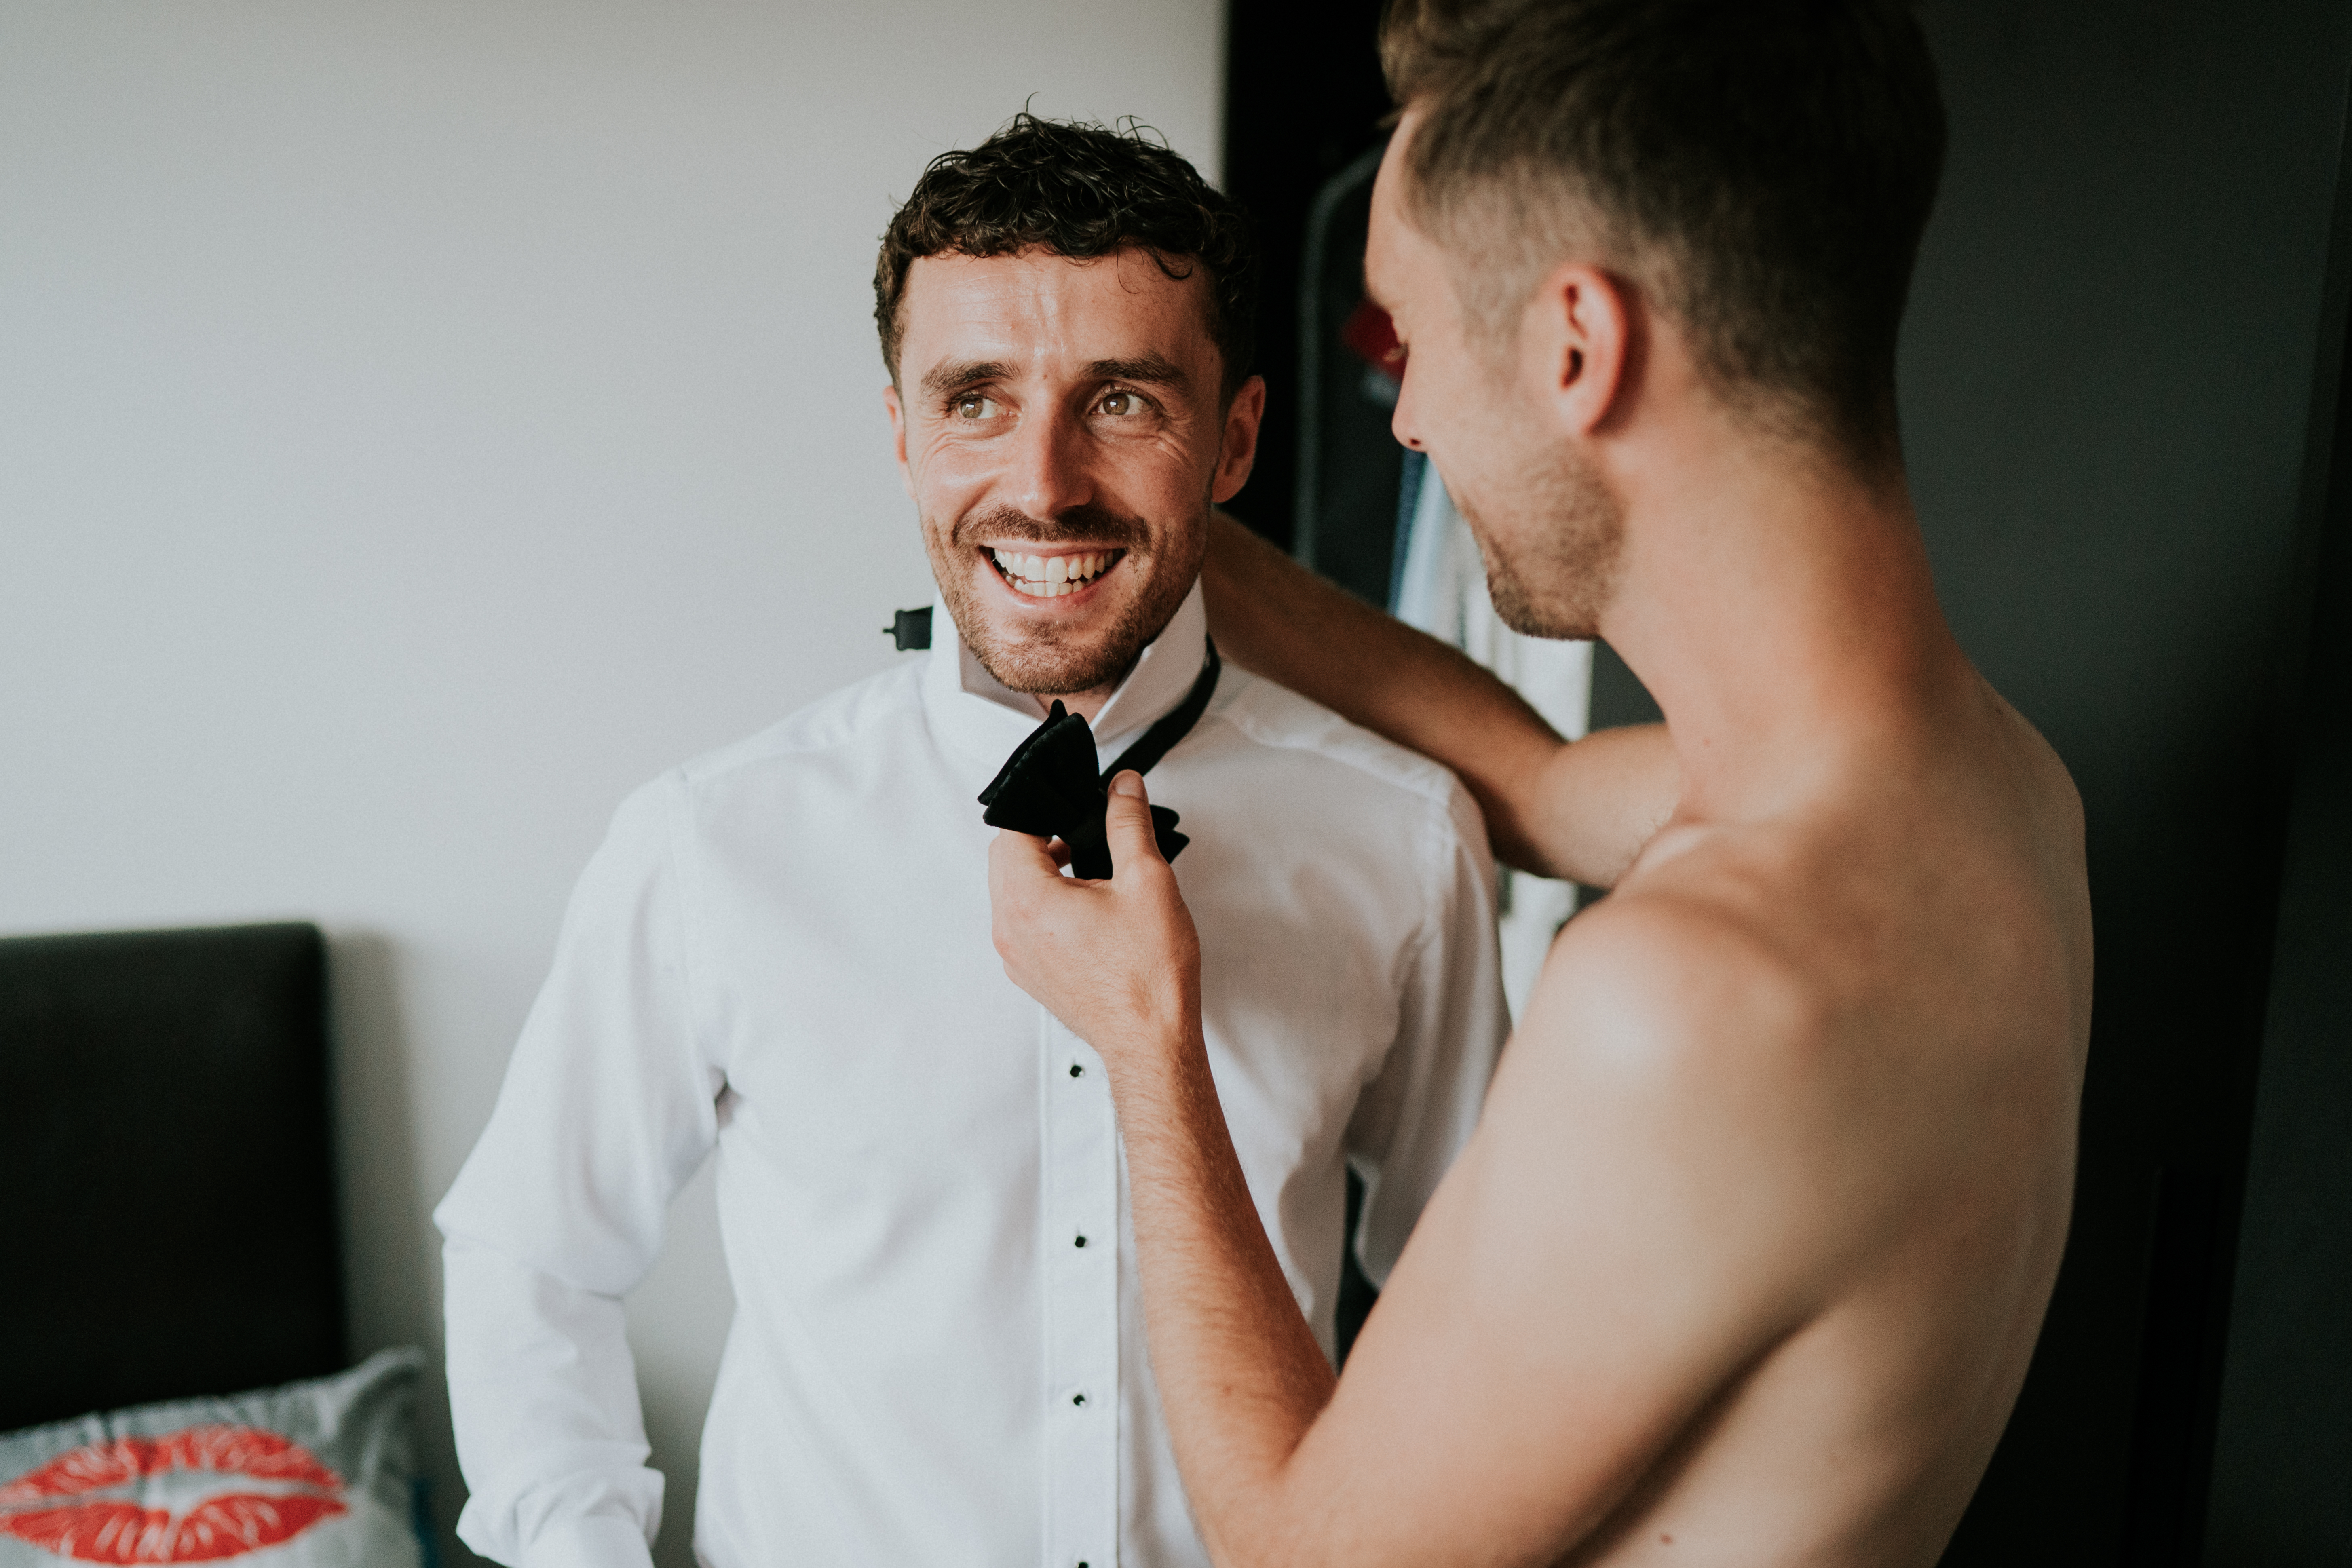 putting on dickie bow